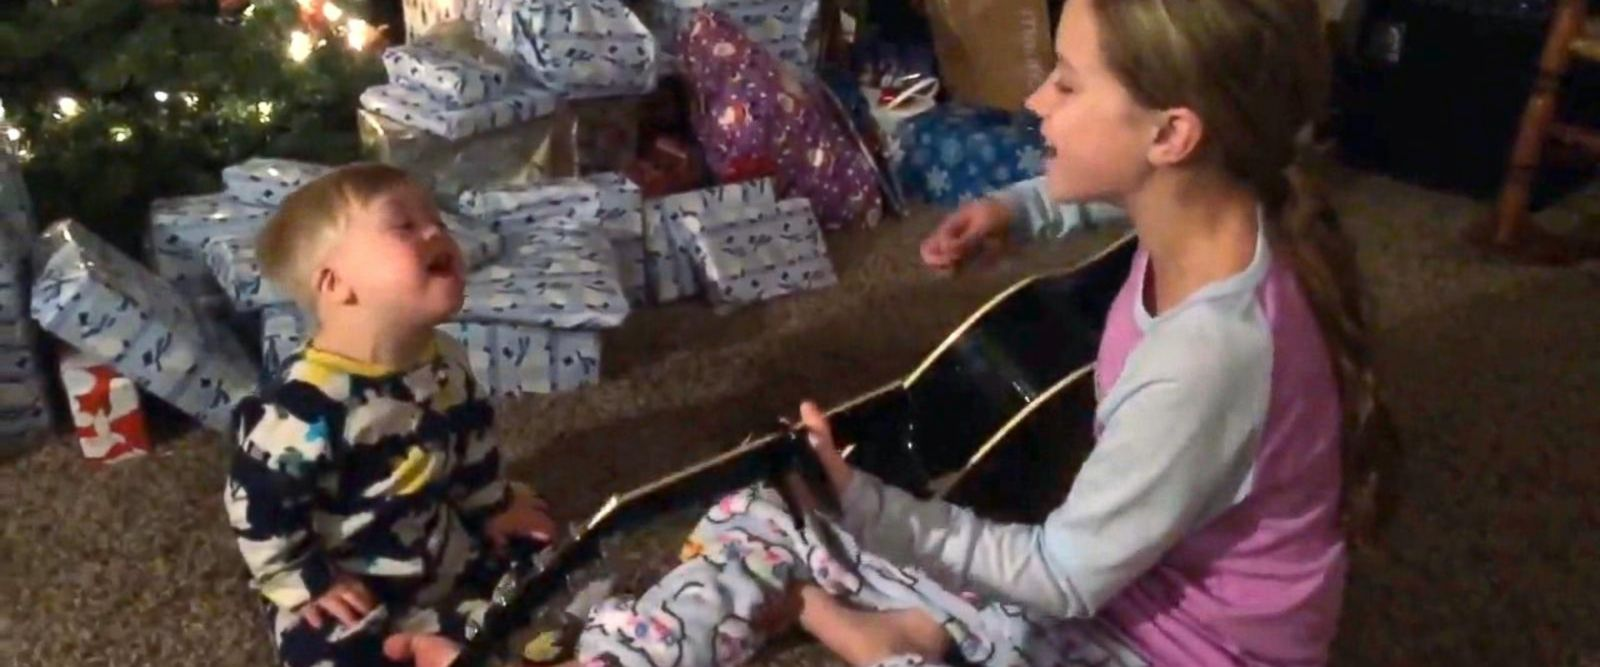 VIDEO: Toddler with Down syndrome sings with sister in video thanks to music therapy